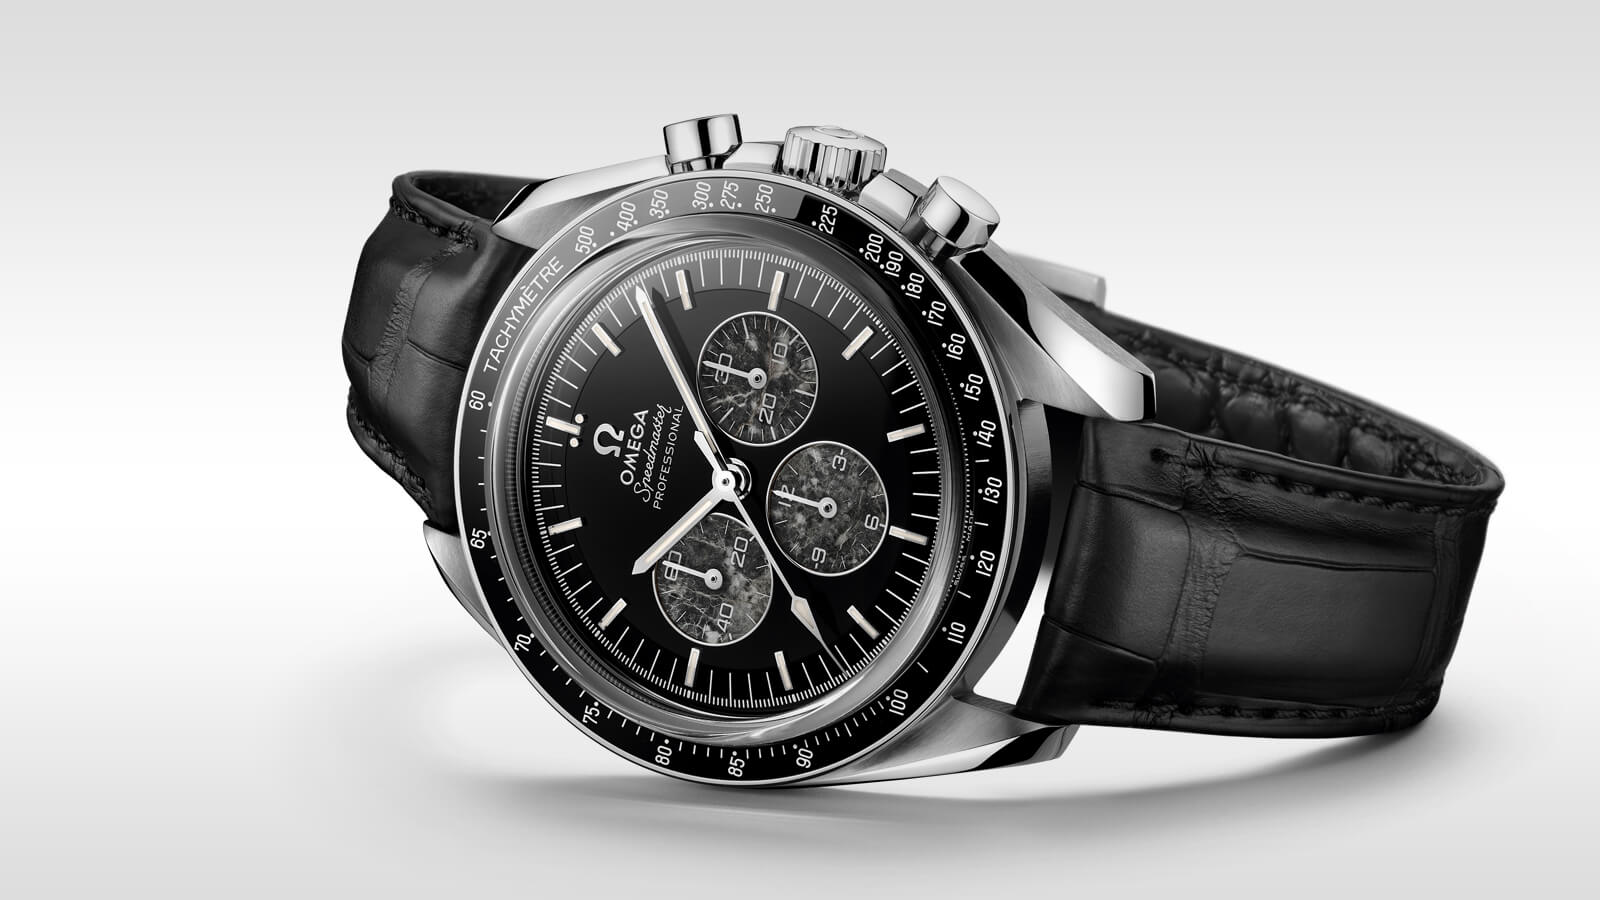 Speedmaster Moonwatch Moonwatch Professional Chronograph 42 mm - 311.93.42.30.99.001 - View 2